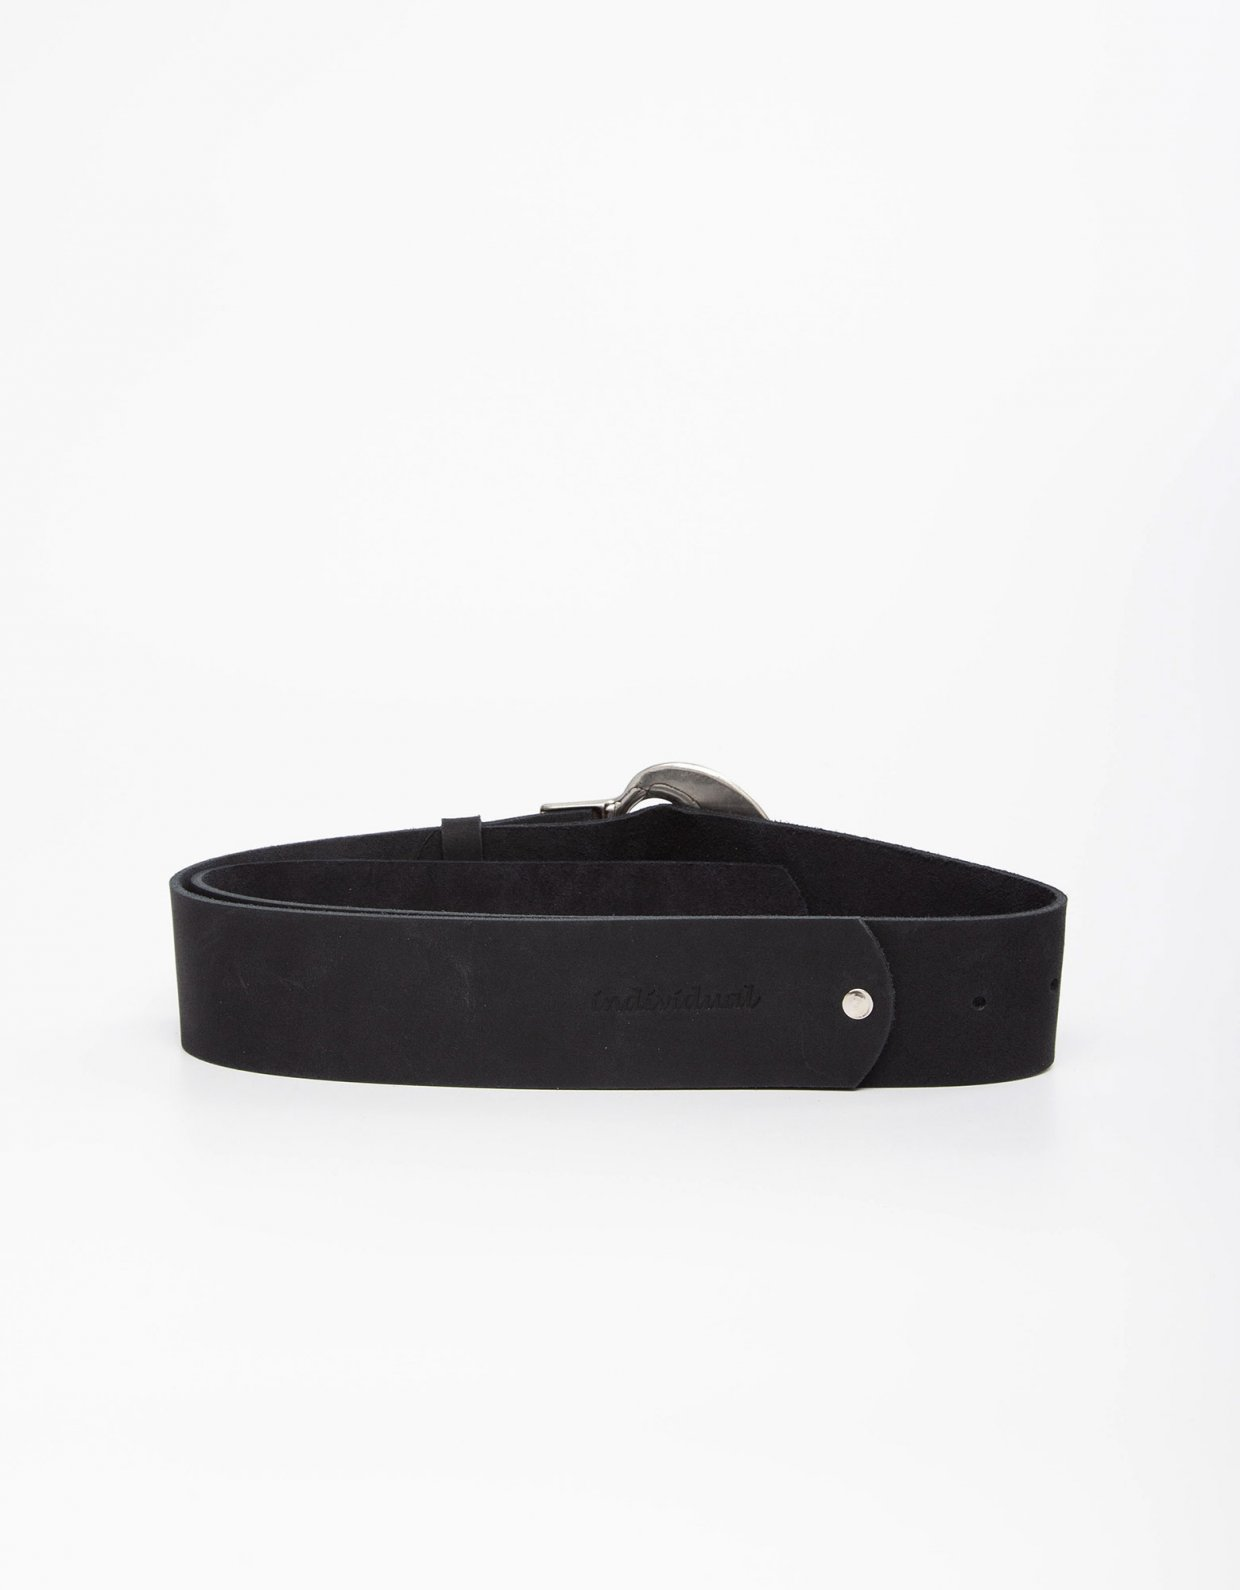 Individual Art Leather Darling black belt